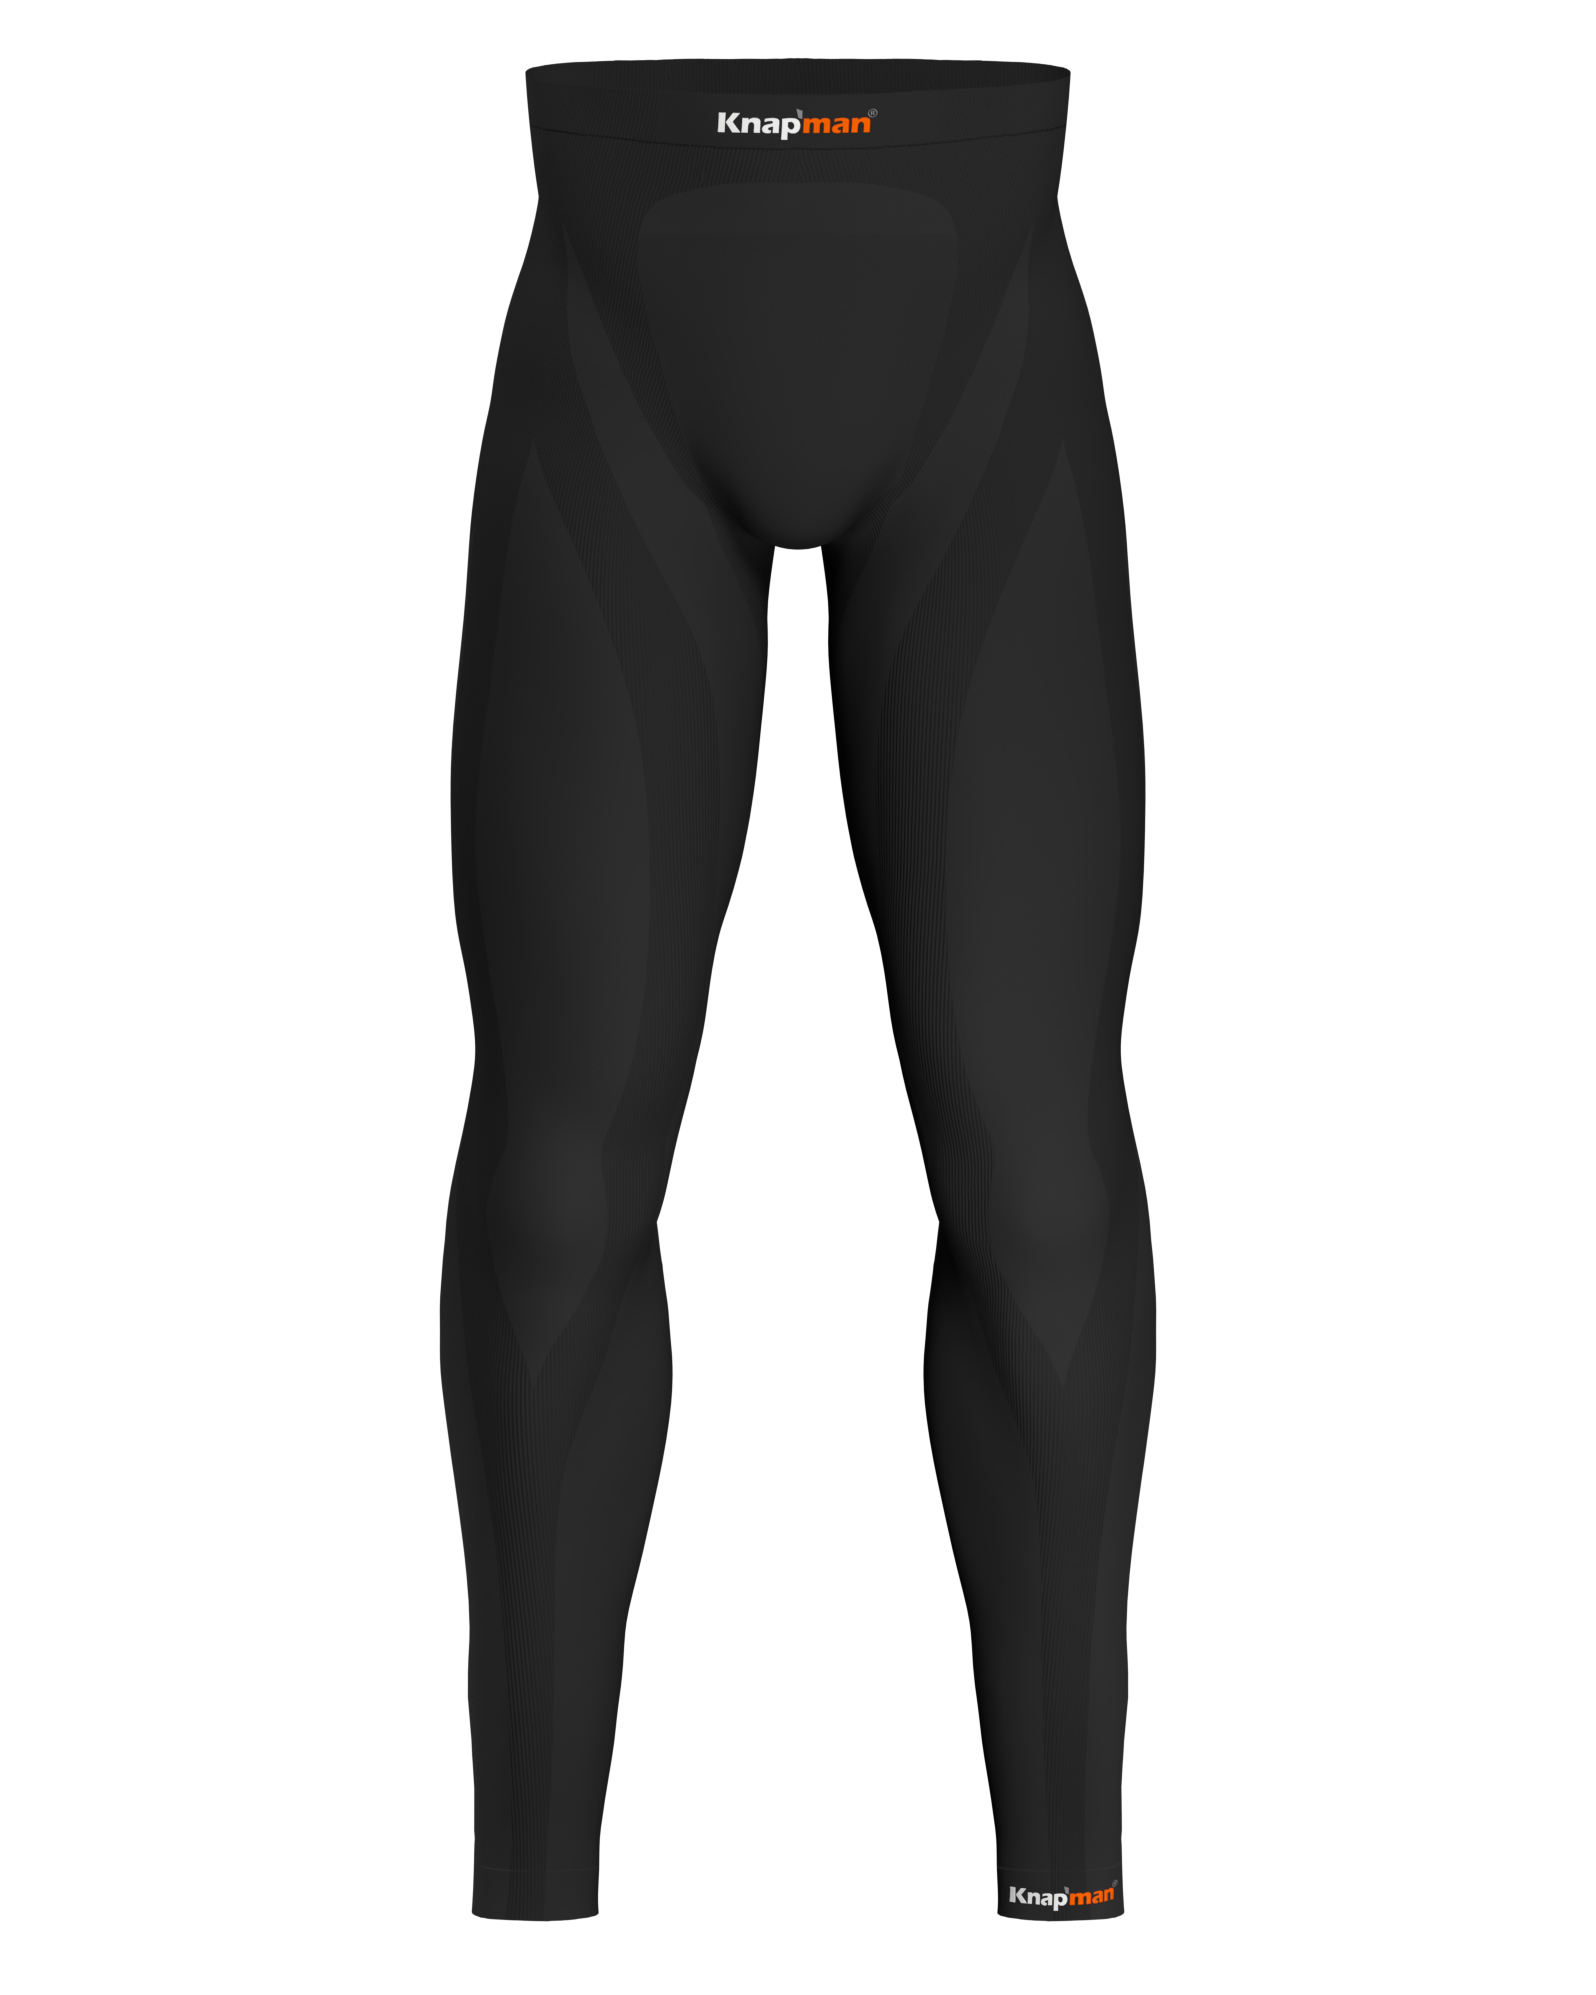 Knap'man Herren Kompression Tights 45% Schwarz